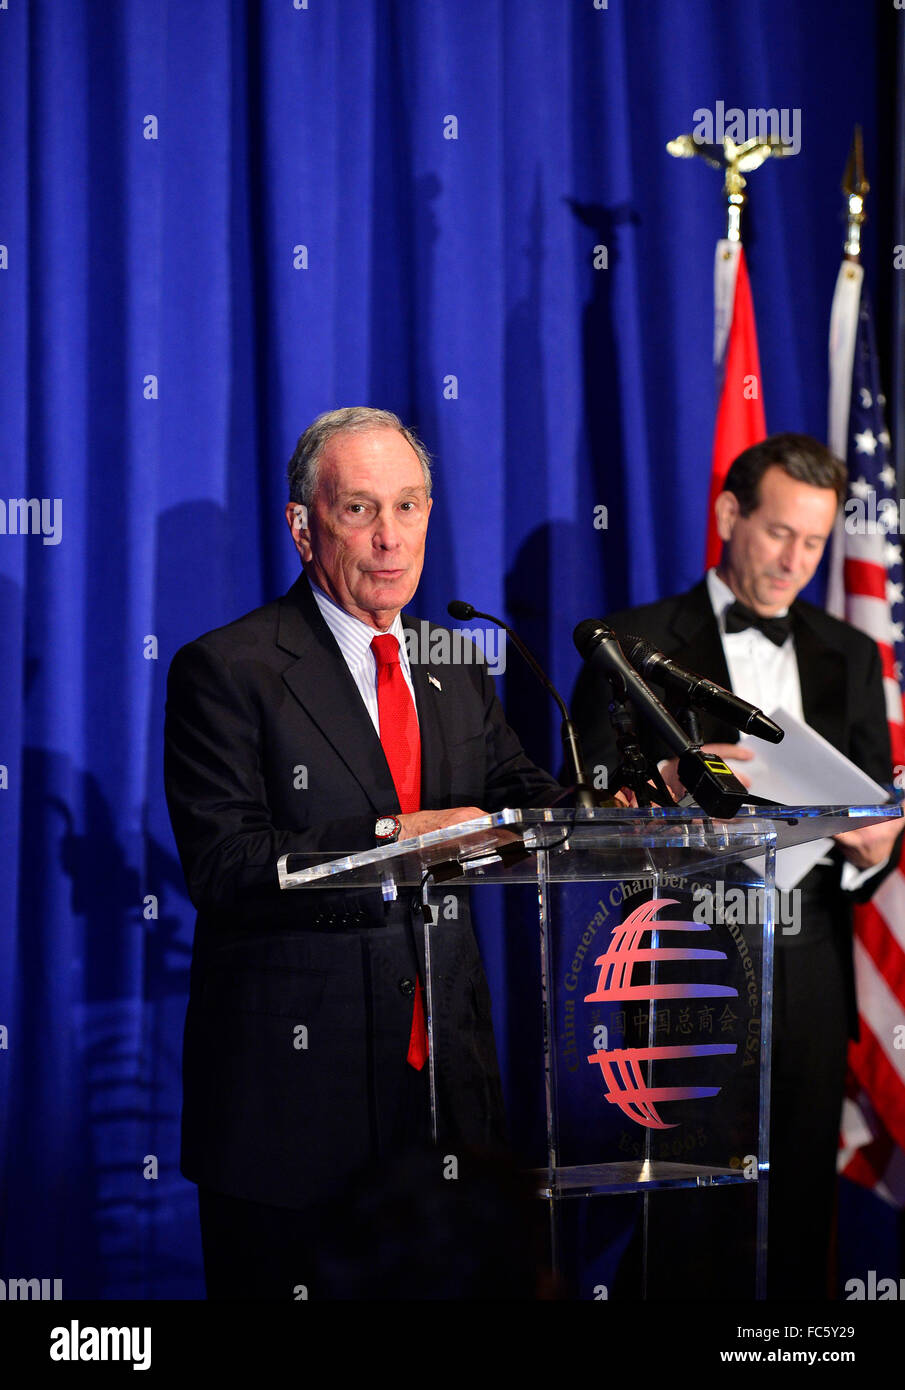 New York, USA. 19th Jan, 2016. Michael Bloomberg (L), founder of Bloomberg L.P. and former New York City mayor, - Stock Image